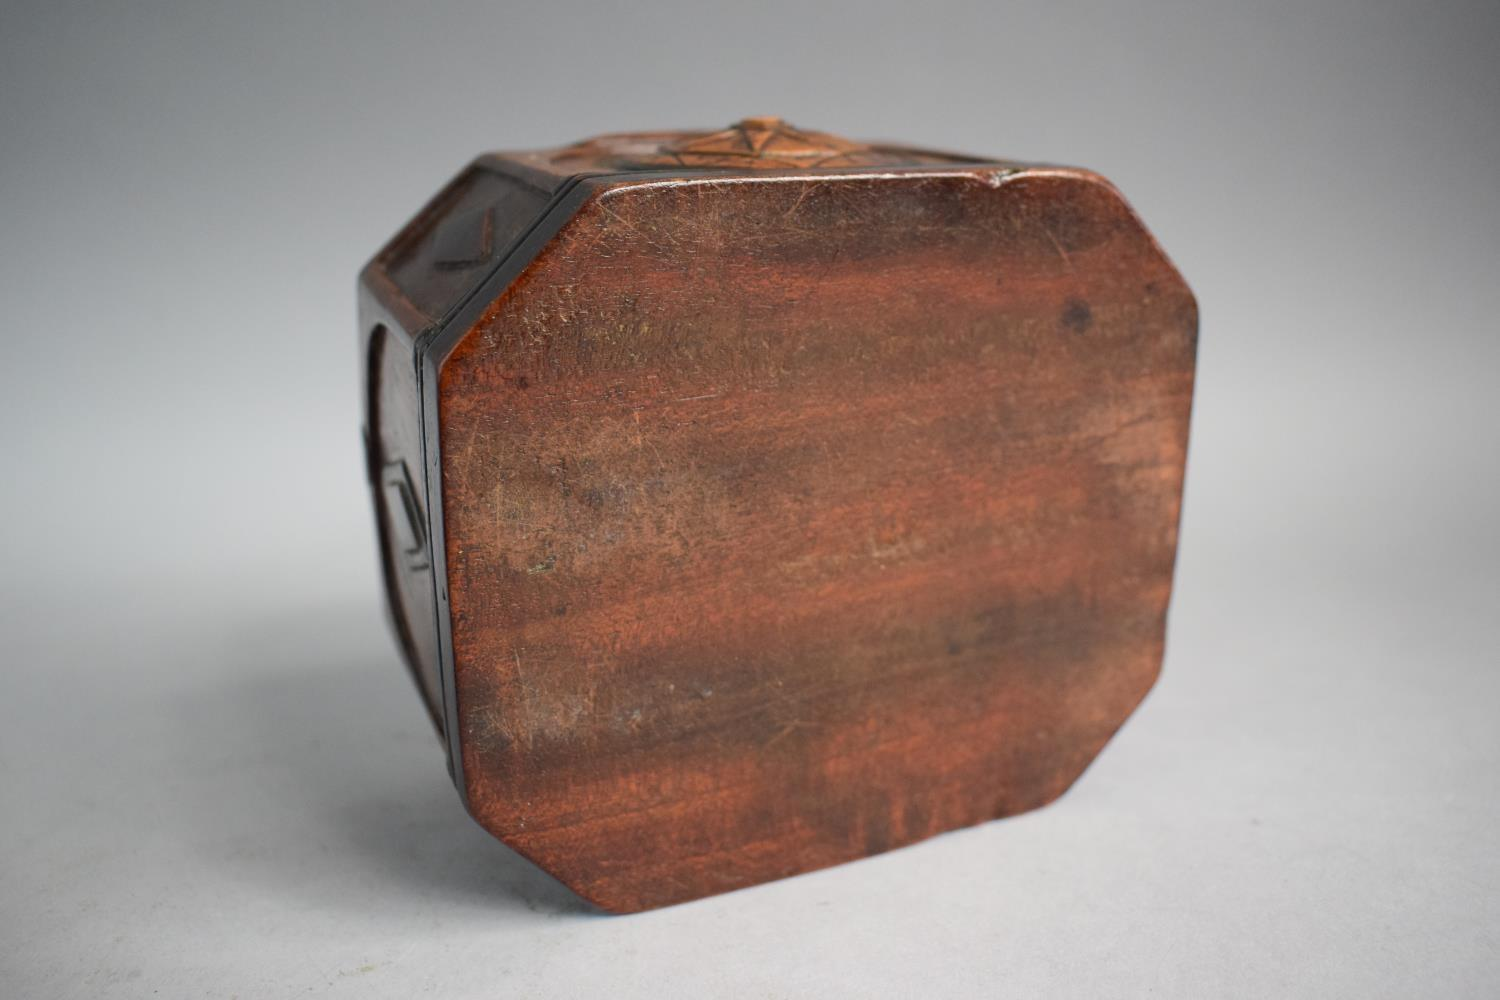 Lot 32 - A 19th Continental Rectangular Tobacco Box with Canted Corners and Starburst and Lozenge